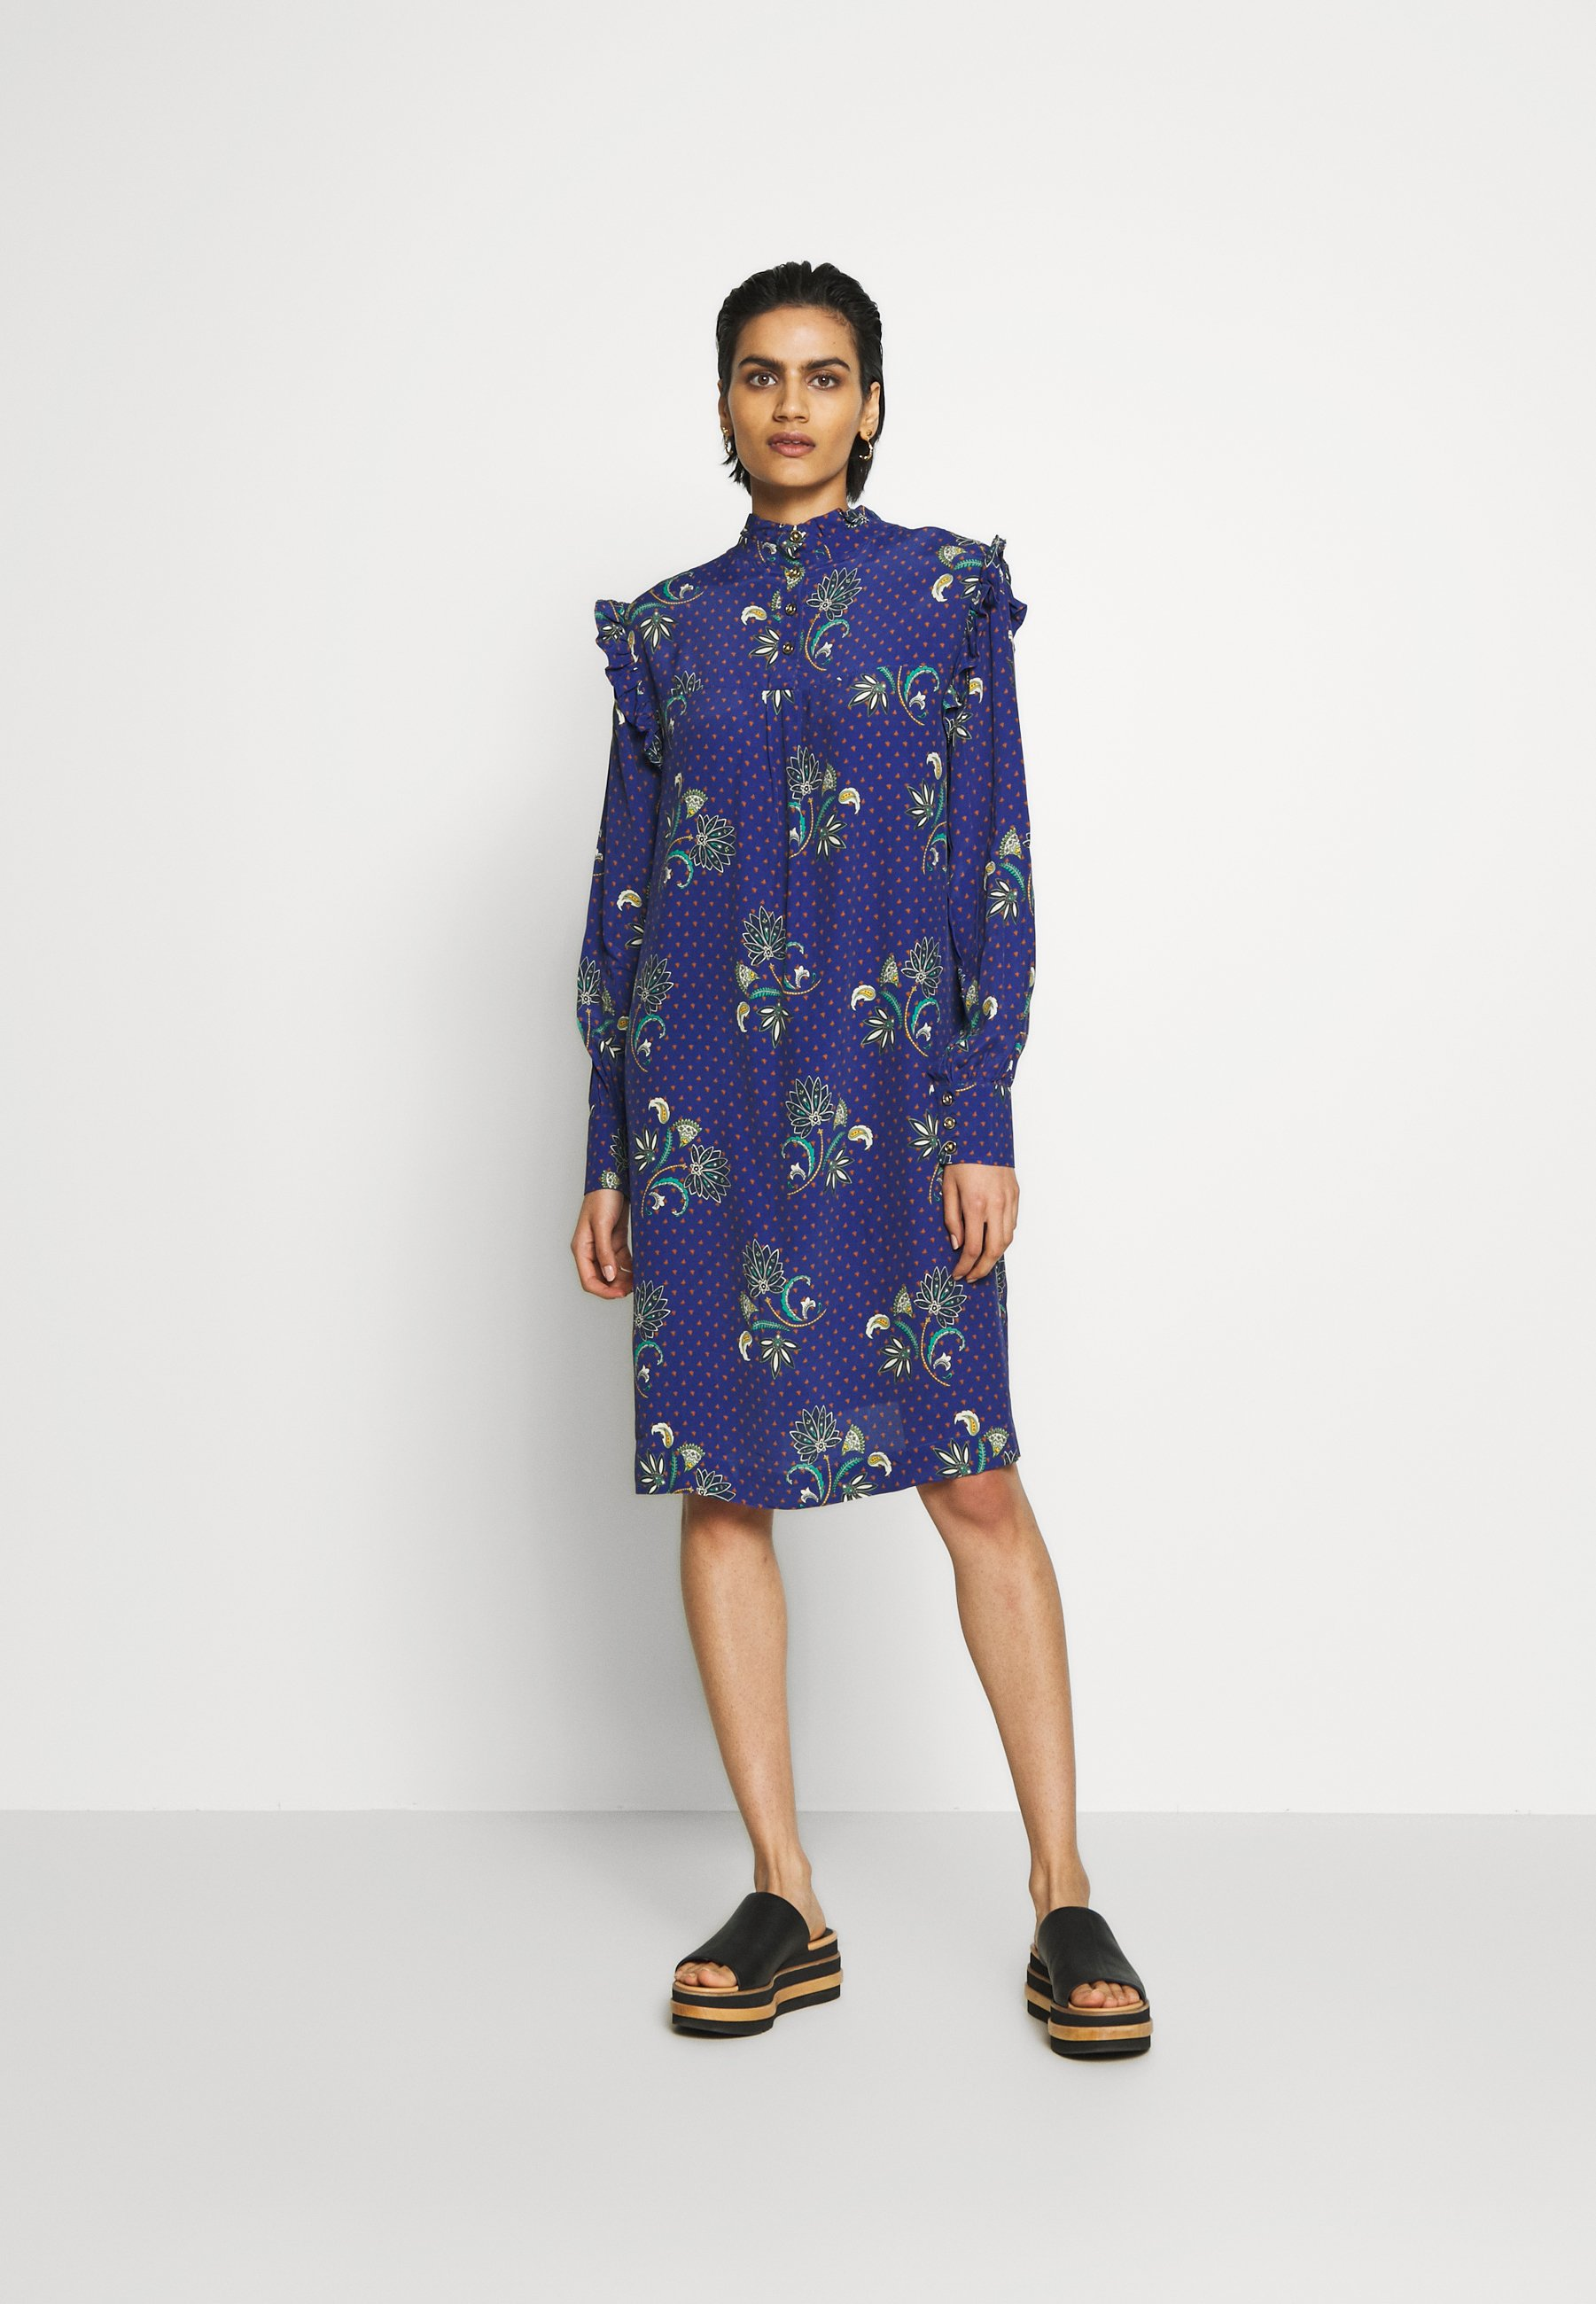 Libertine-libertine Sky - Day Dress Royal Paisley UK